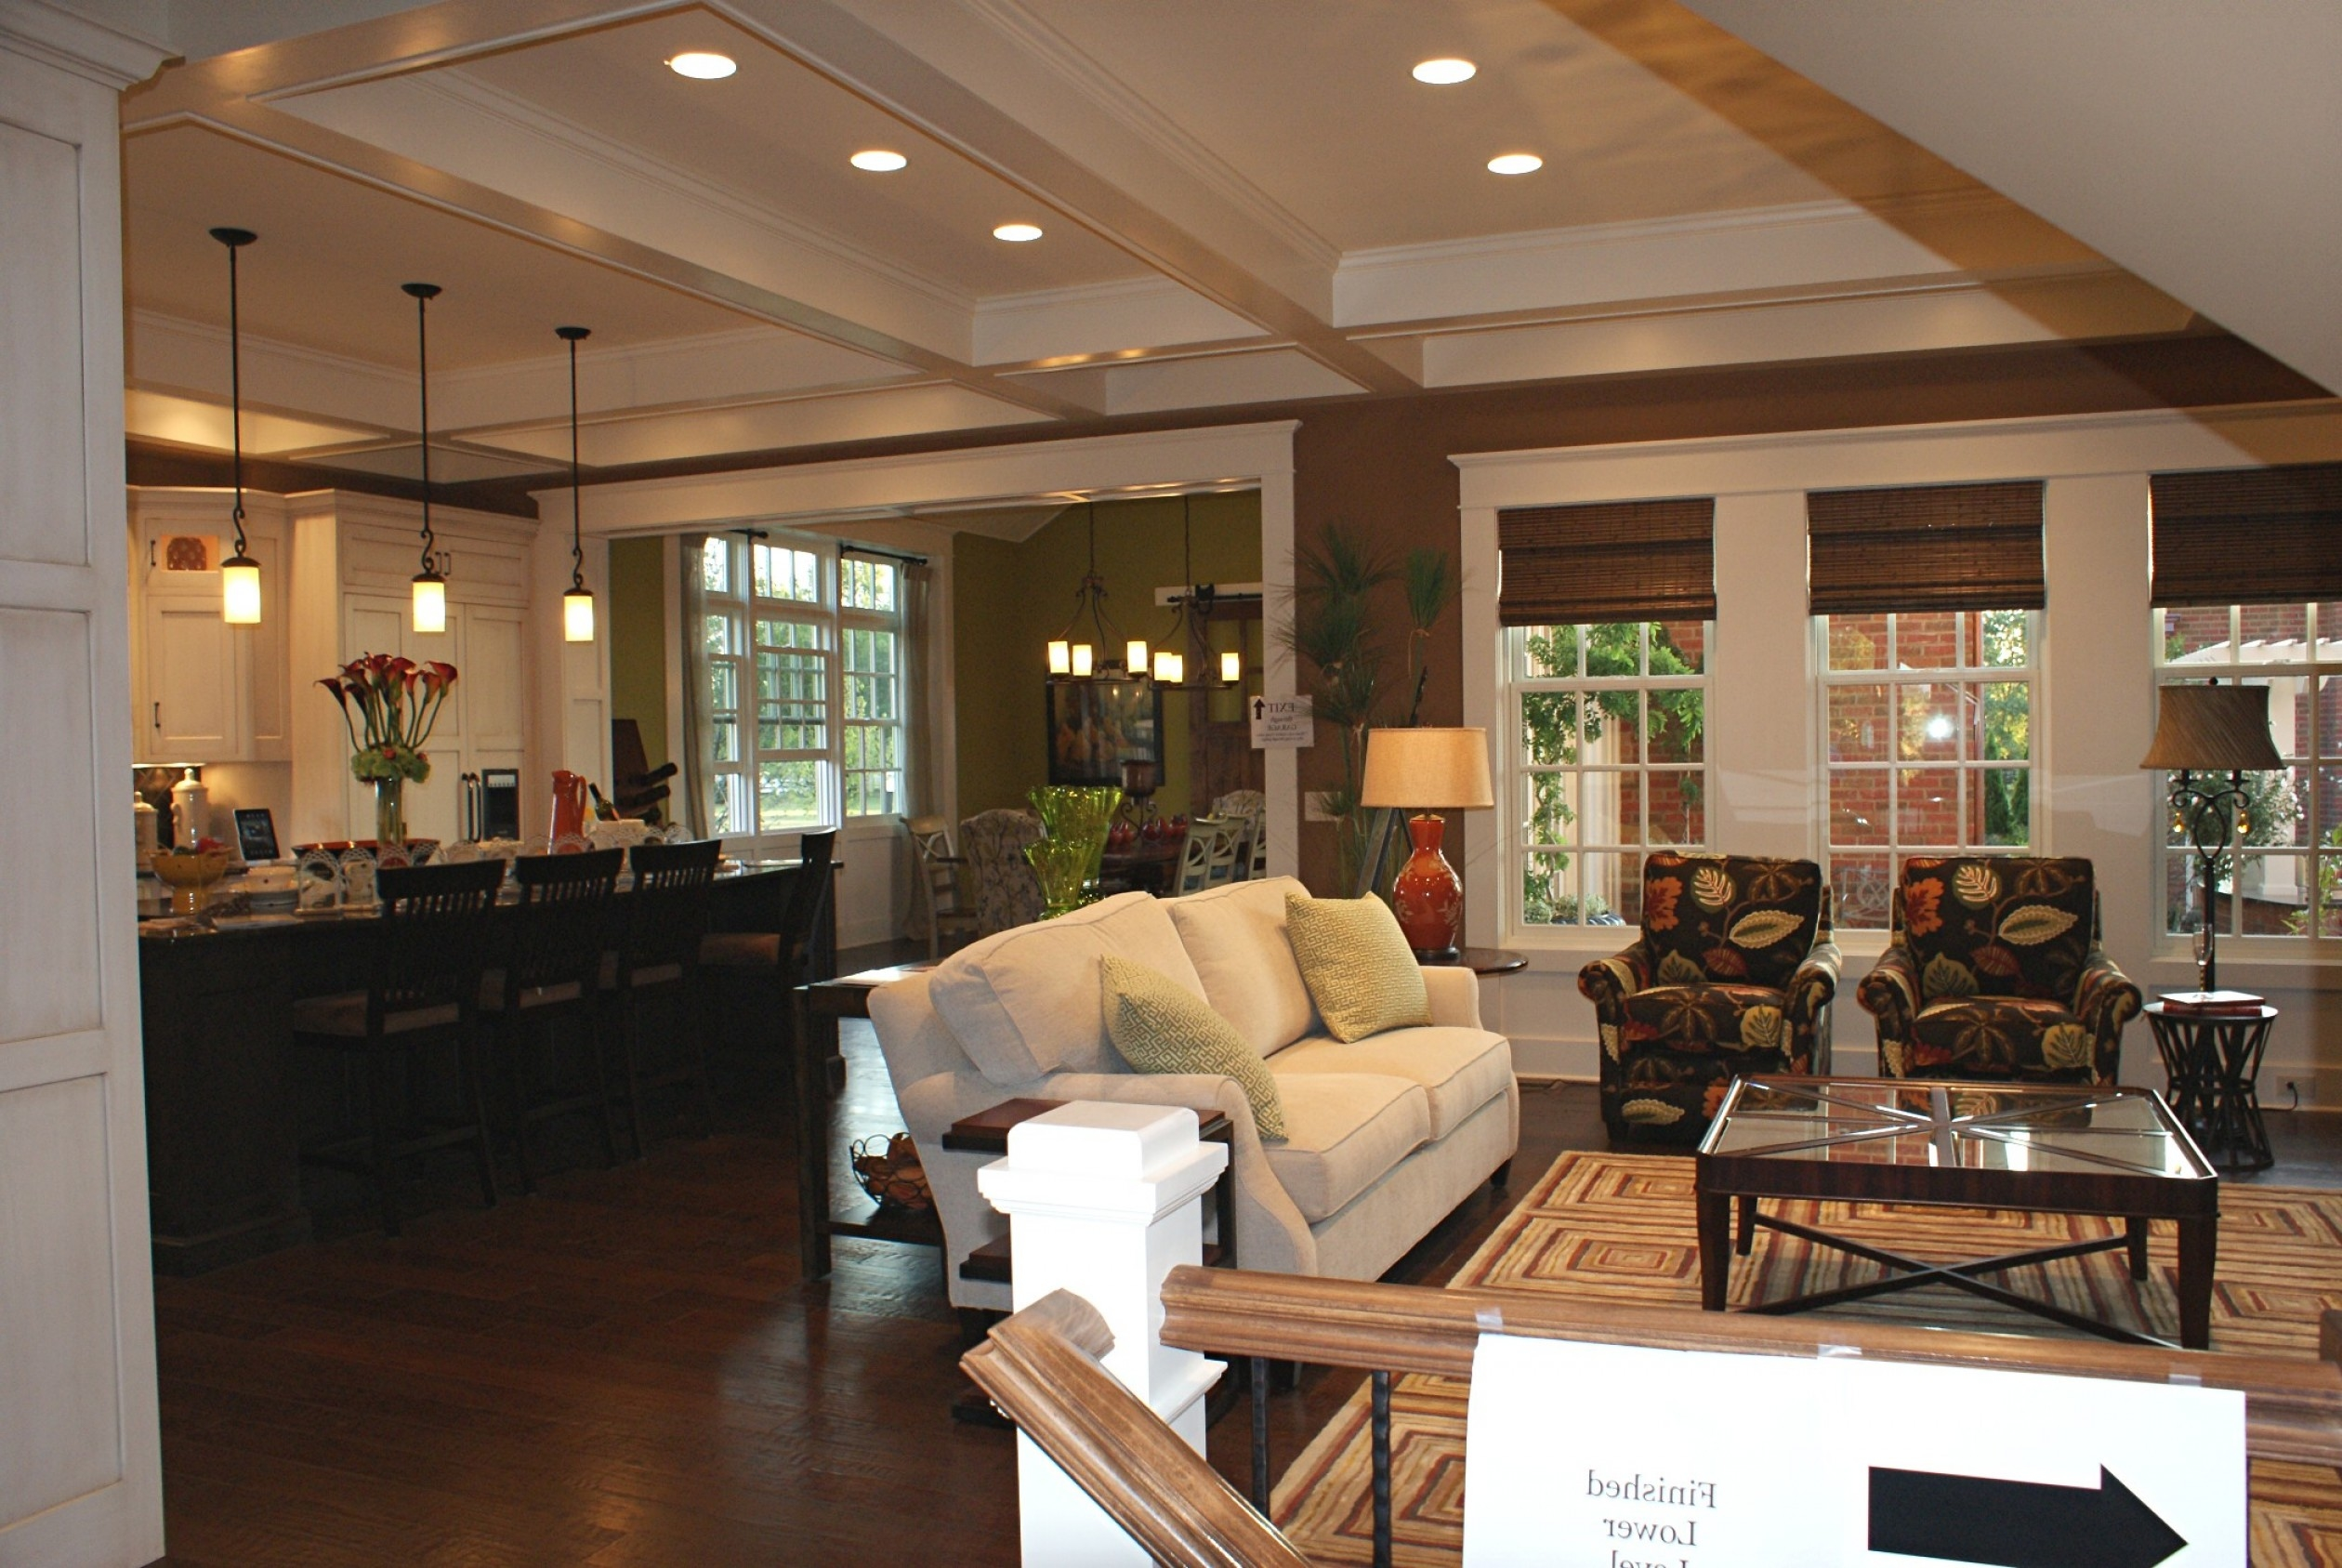 kitchen and family room ideas house beautiful family rooms kitchen family room ideas kitchen family room